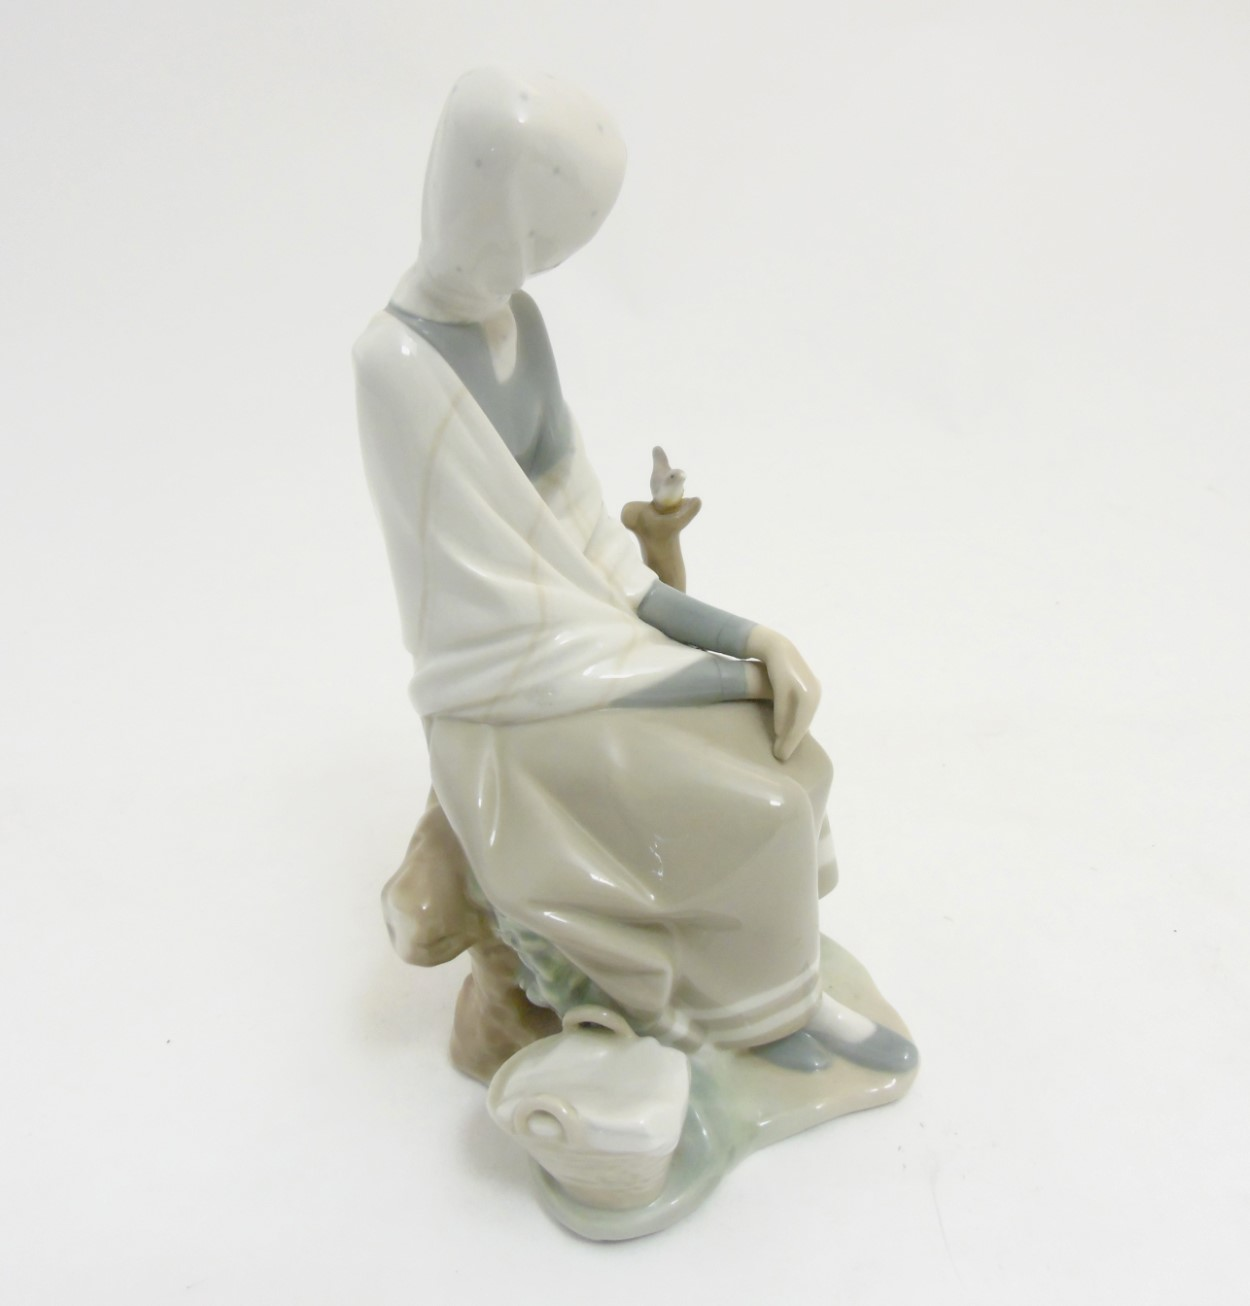 Lot 75 - A Lladro 'New Shepherdess' figurine of a girl sat watching a bird, makers mark to base,